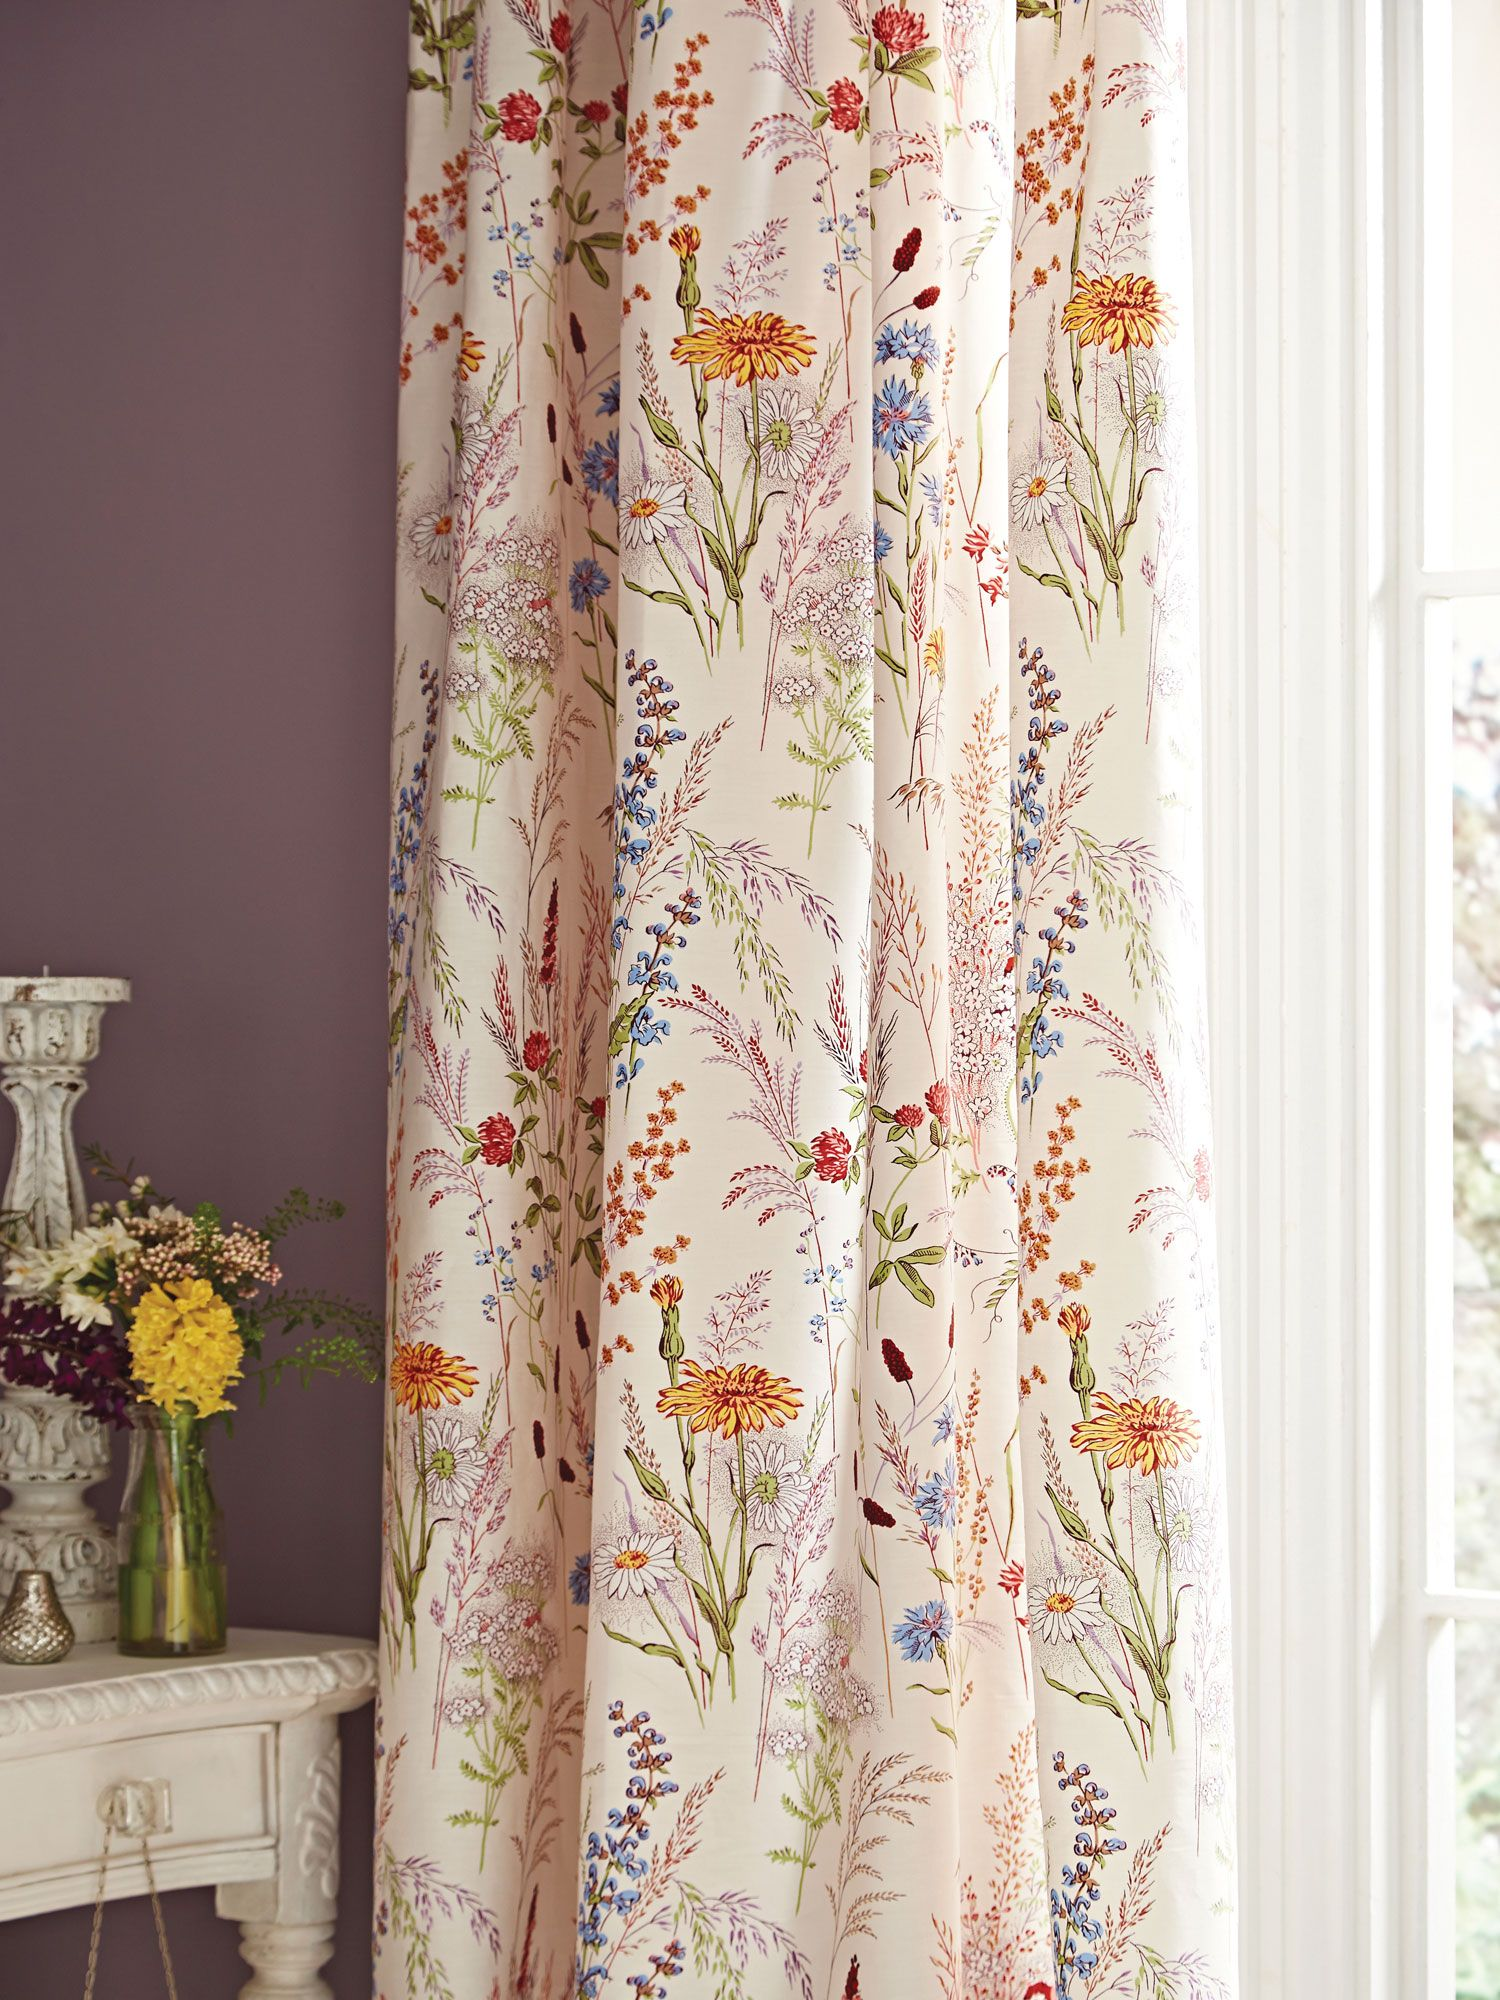 Curtain Deals Buy Cheap Red Tab Top Curtains Compare Curtains And Blinds